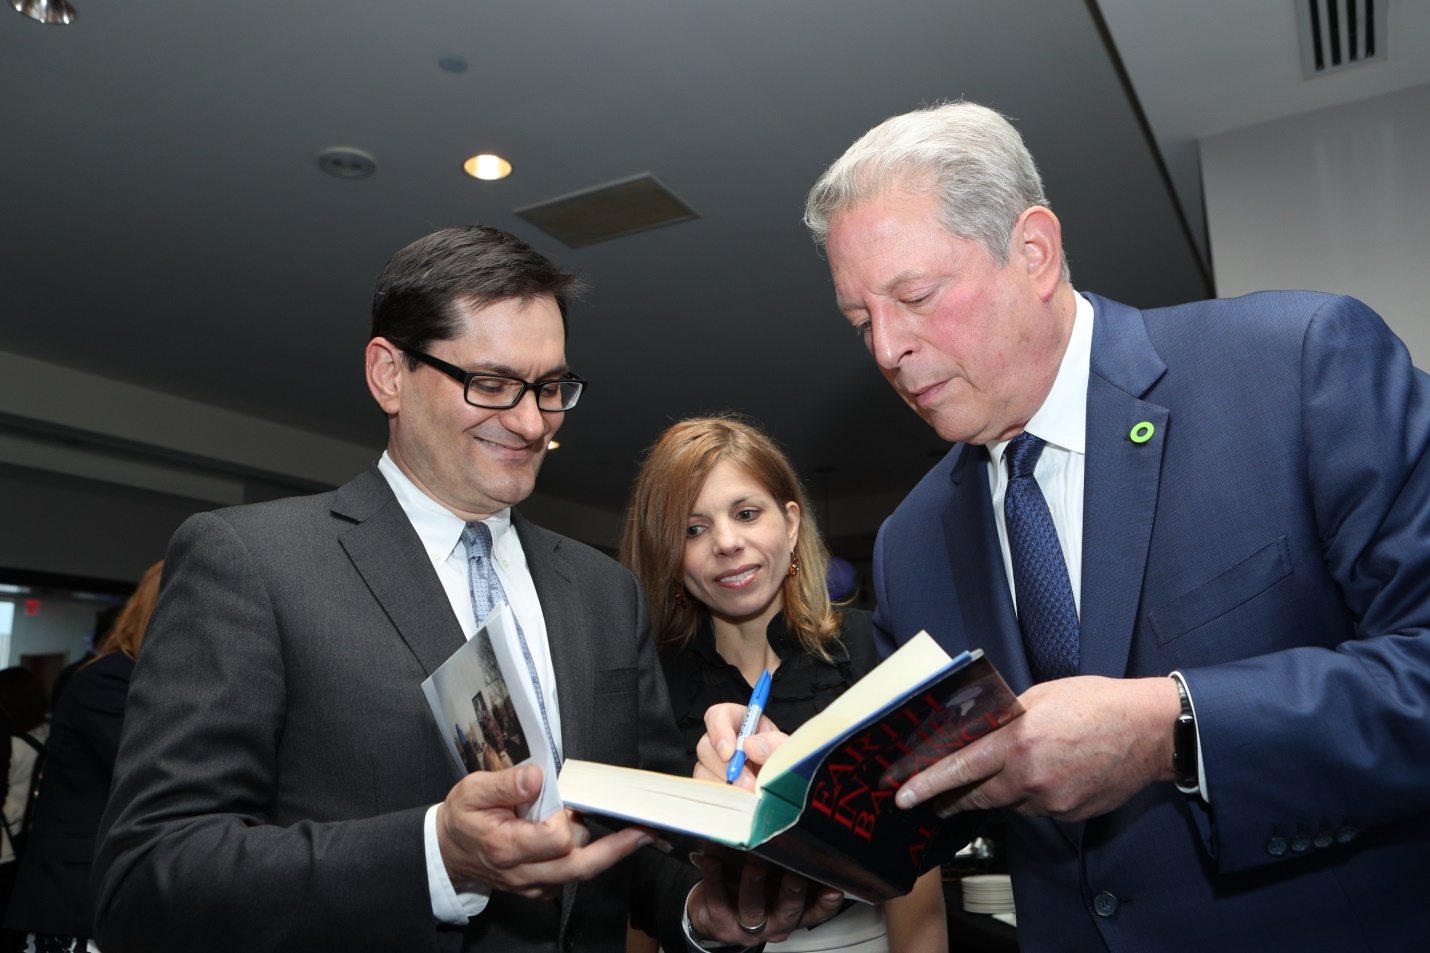 James Cargas, Dr. Dorina Papageorgiou and Vice President Al Gore; photo courtesy of James Cargas